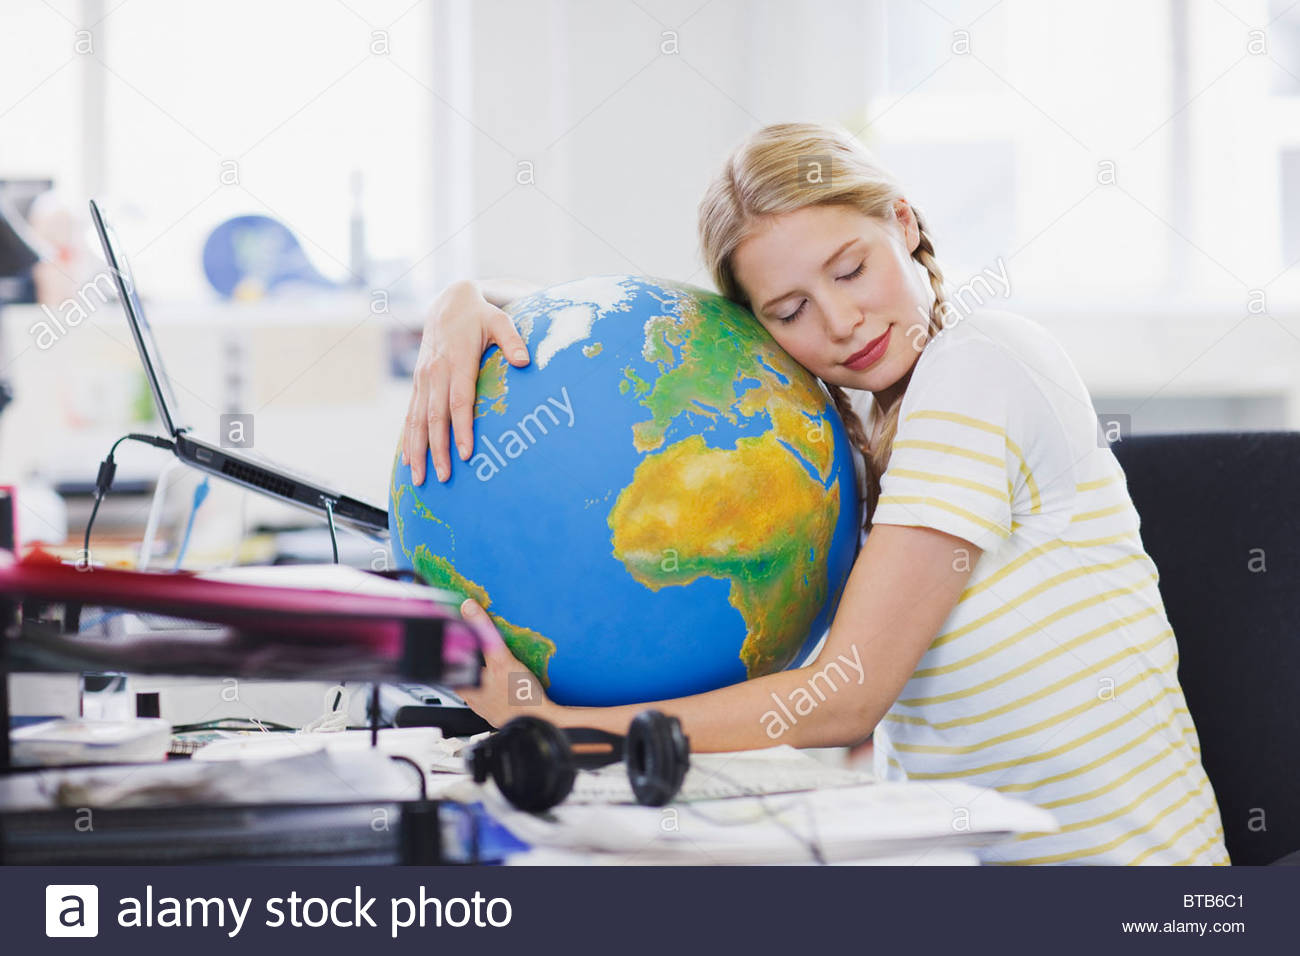 Businesswoman with eyes closed hugging globe at desk in office - Stock Image